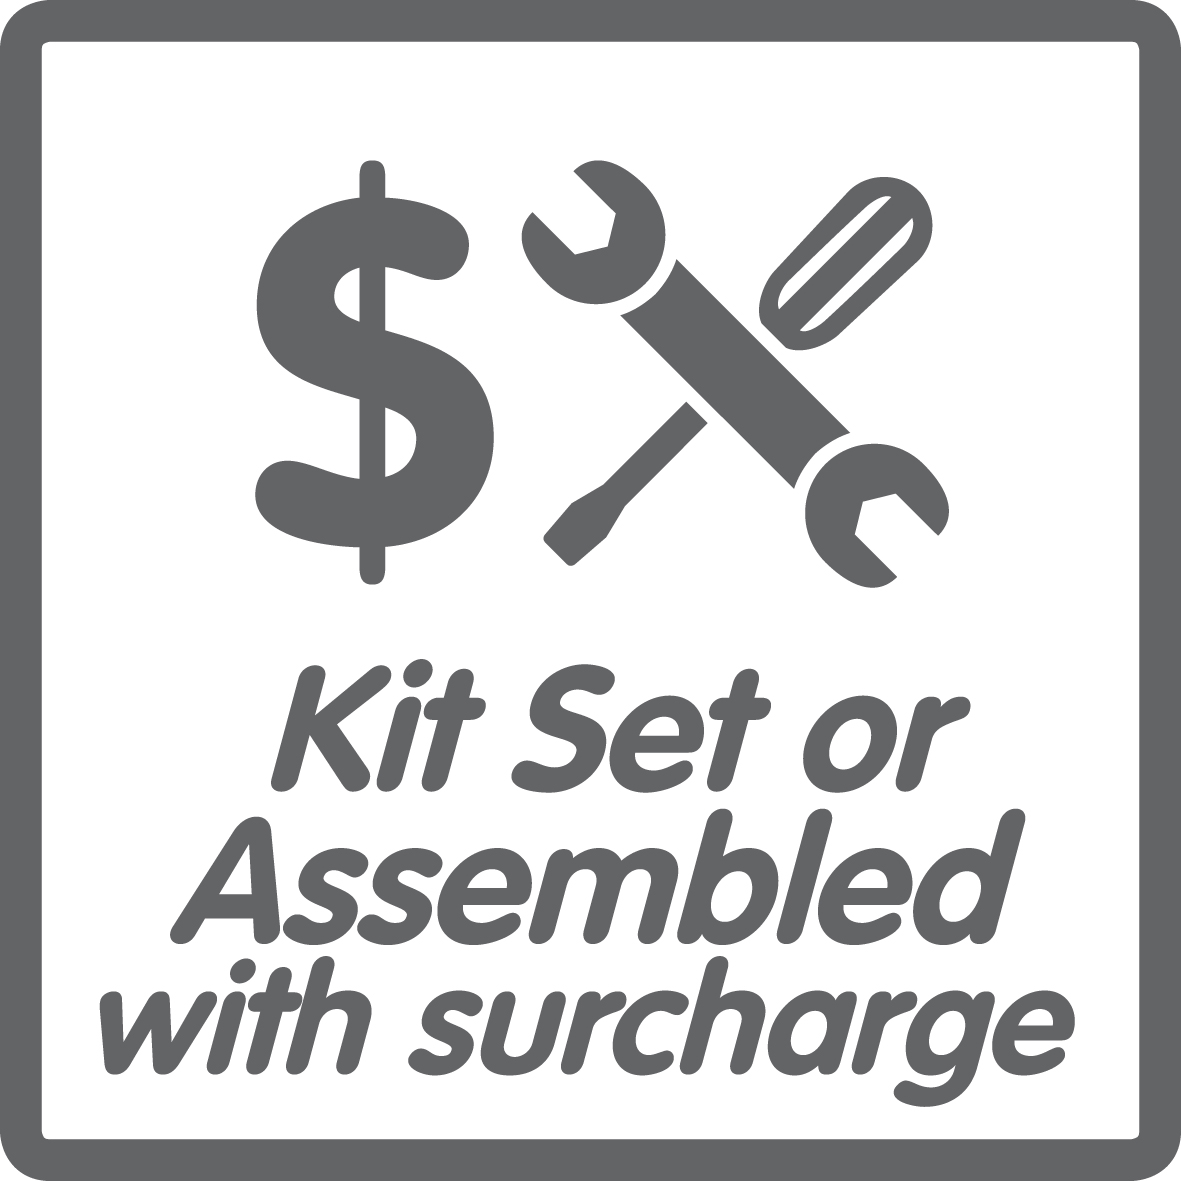 This product has a kitset assembly surcharge